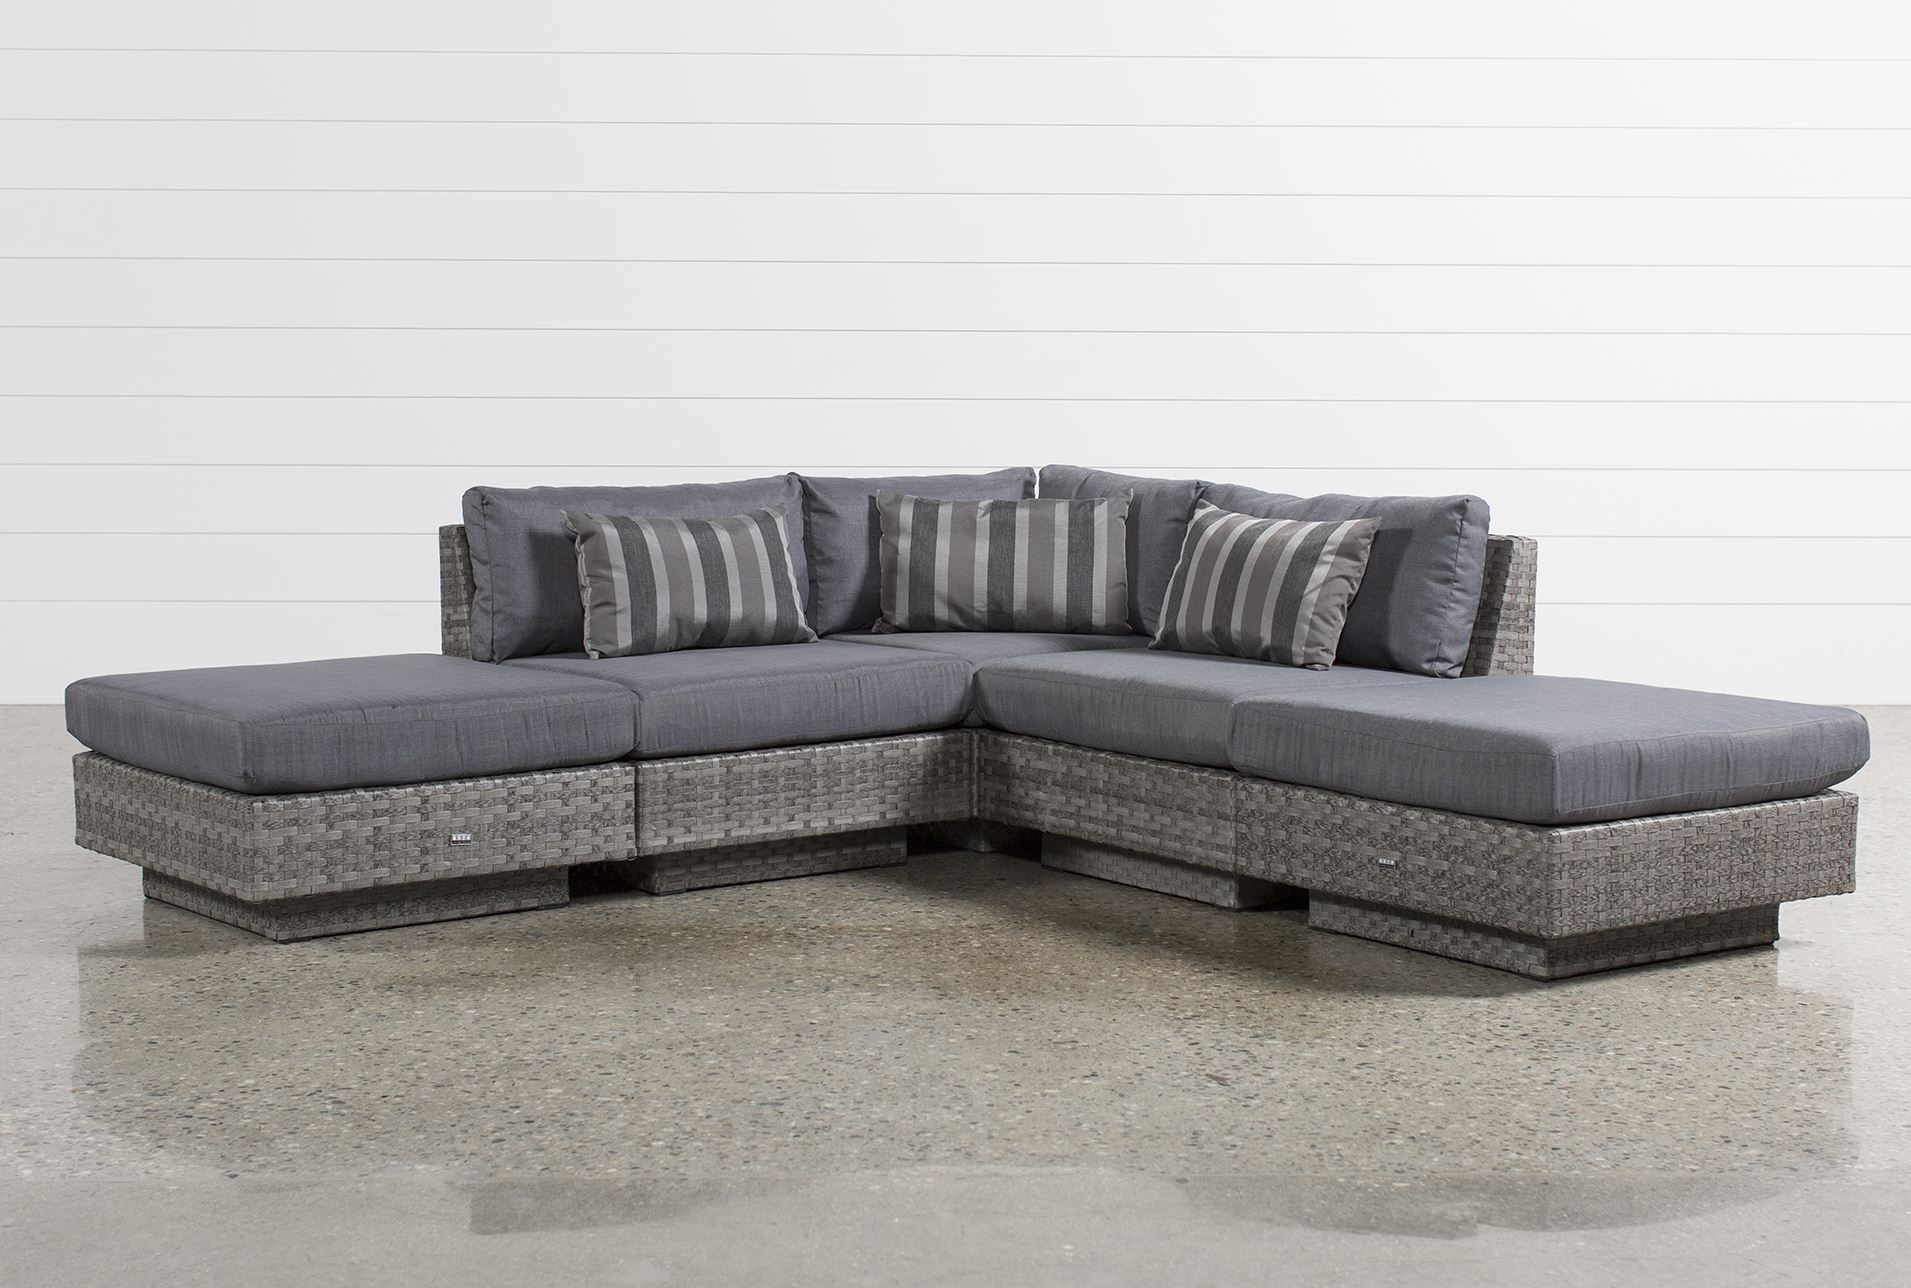 3 Piece Sectional Sofa Dimensions | Baci Living Room with regard to Haven 3 Piece Sectionals (Image 3 of 32)